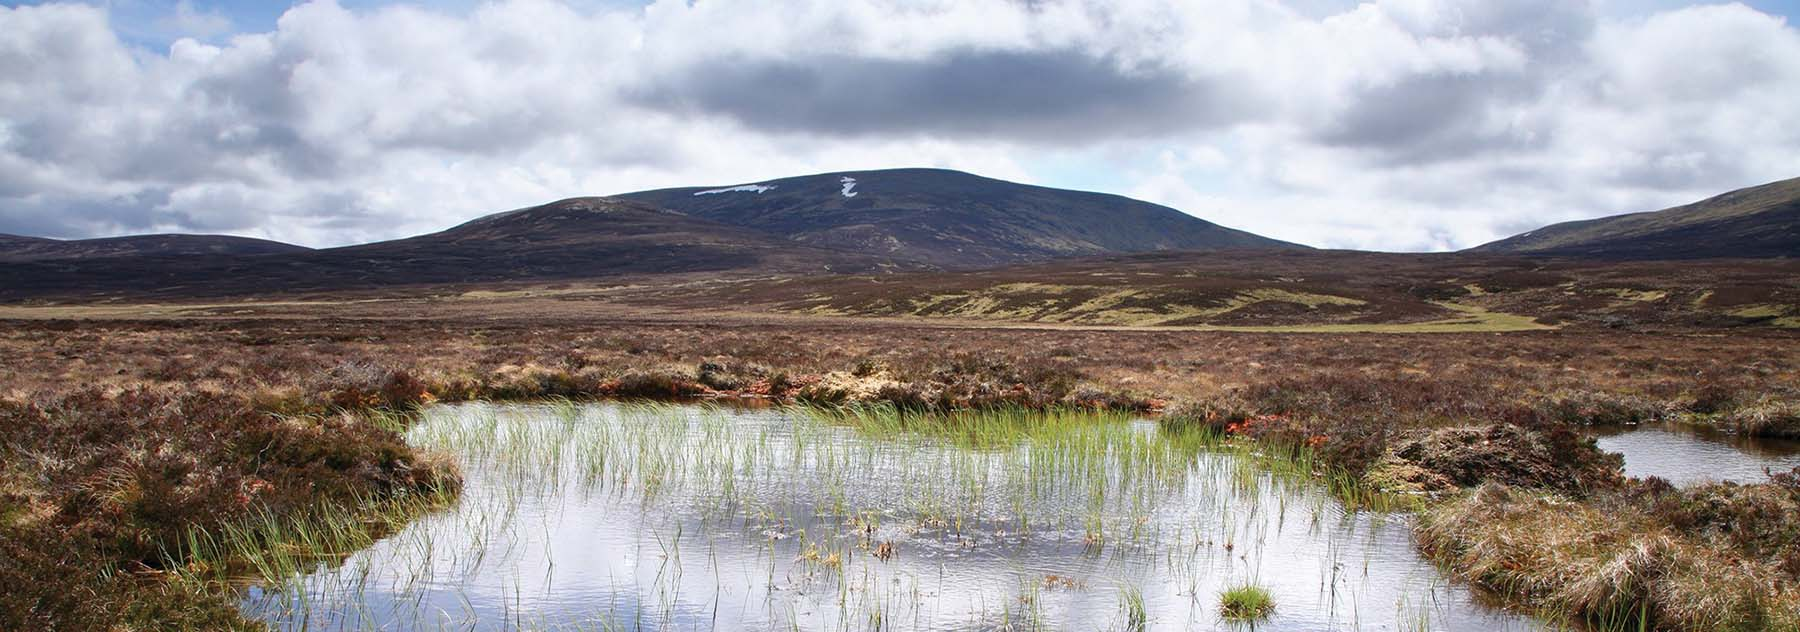 Panoramic view of Scotland's peatlands. A scene of nature with undulating hills in the distance with marshland and grasses